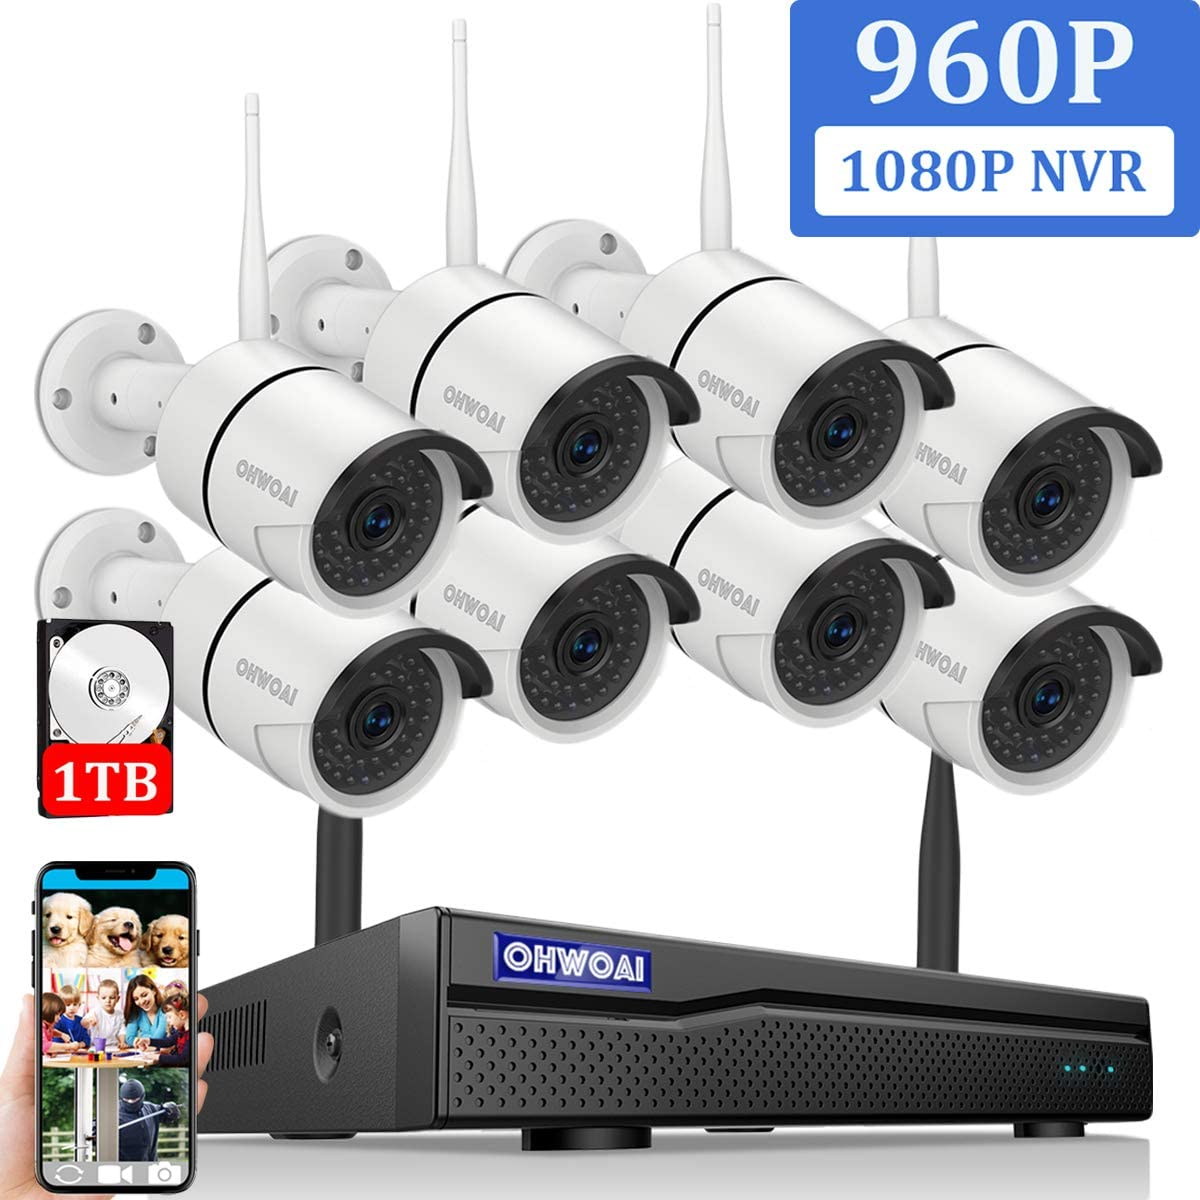 2020 New Security Camera System Wireless, 8 Channel 1080P NVR 1TB Hard Drive Pre-Install, 8PCS 960P 2.0MP CCTV WI-FI IP Cameras for Homes,OHWOAI HD Surveillance Video Security System.